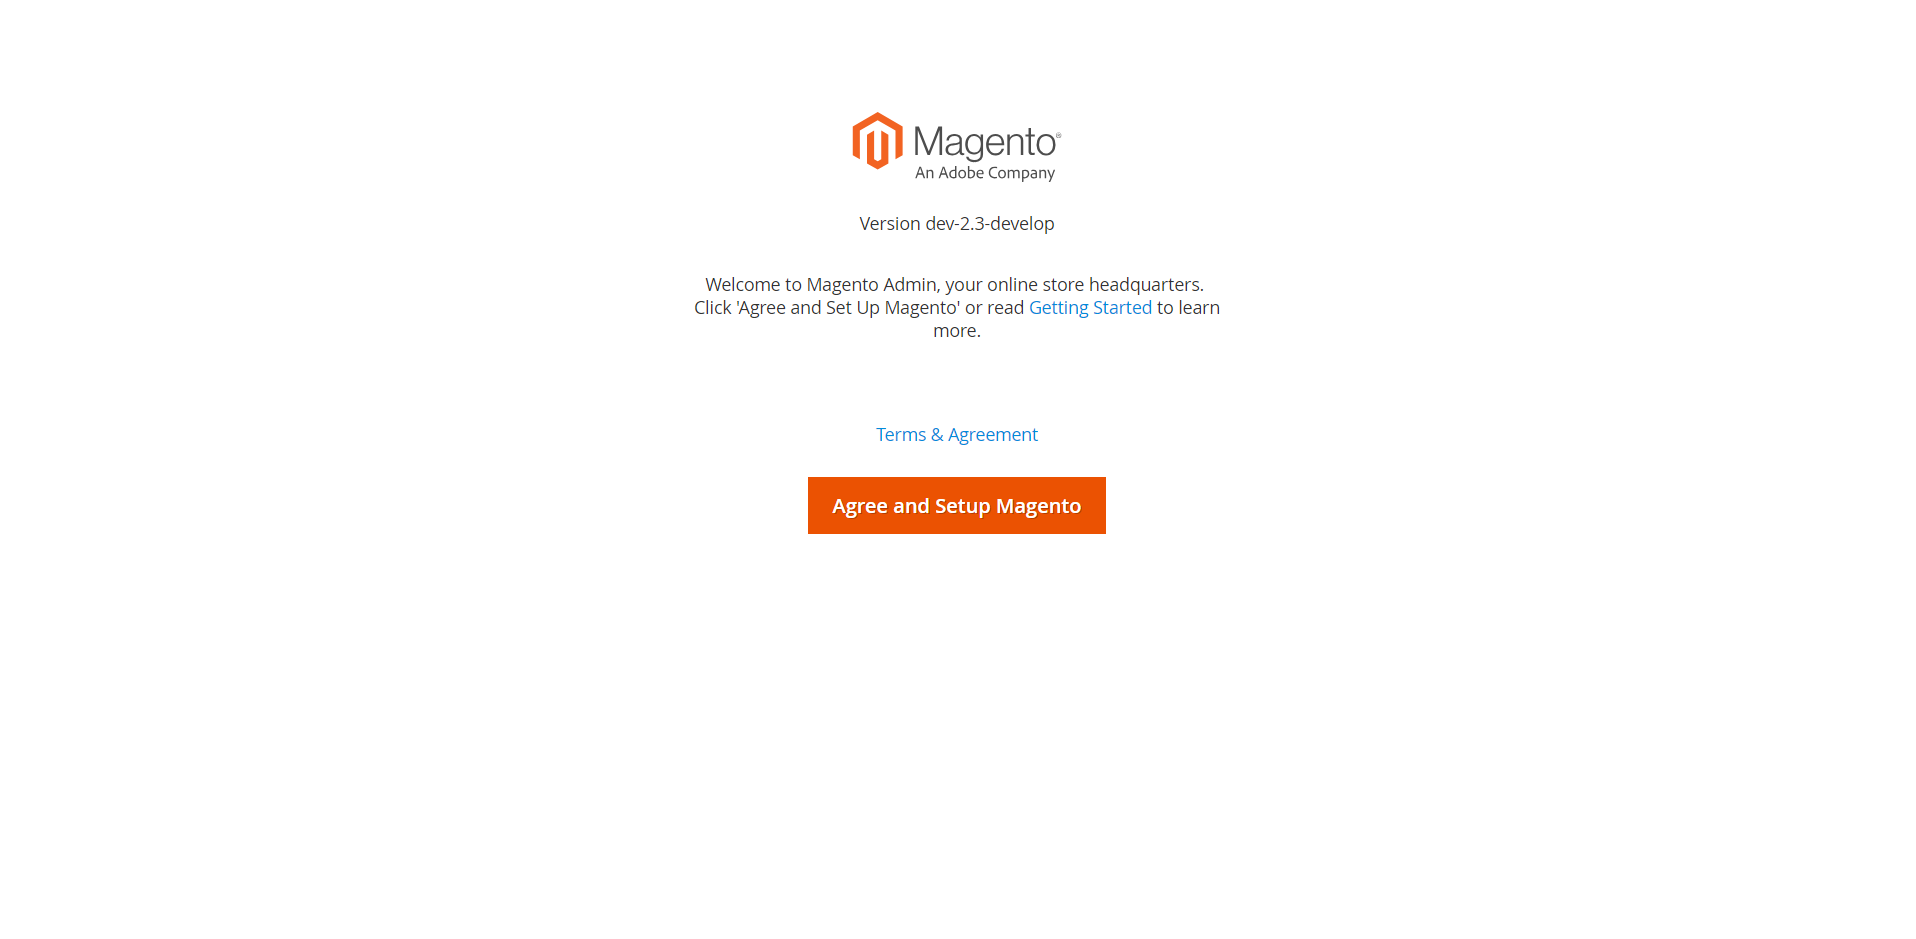 Install Magento on AWS: A Step-by-Step Guide